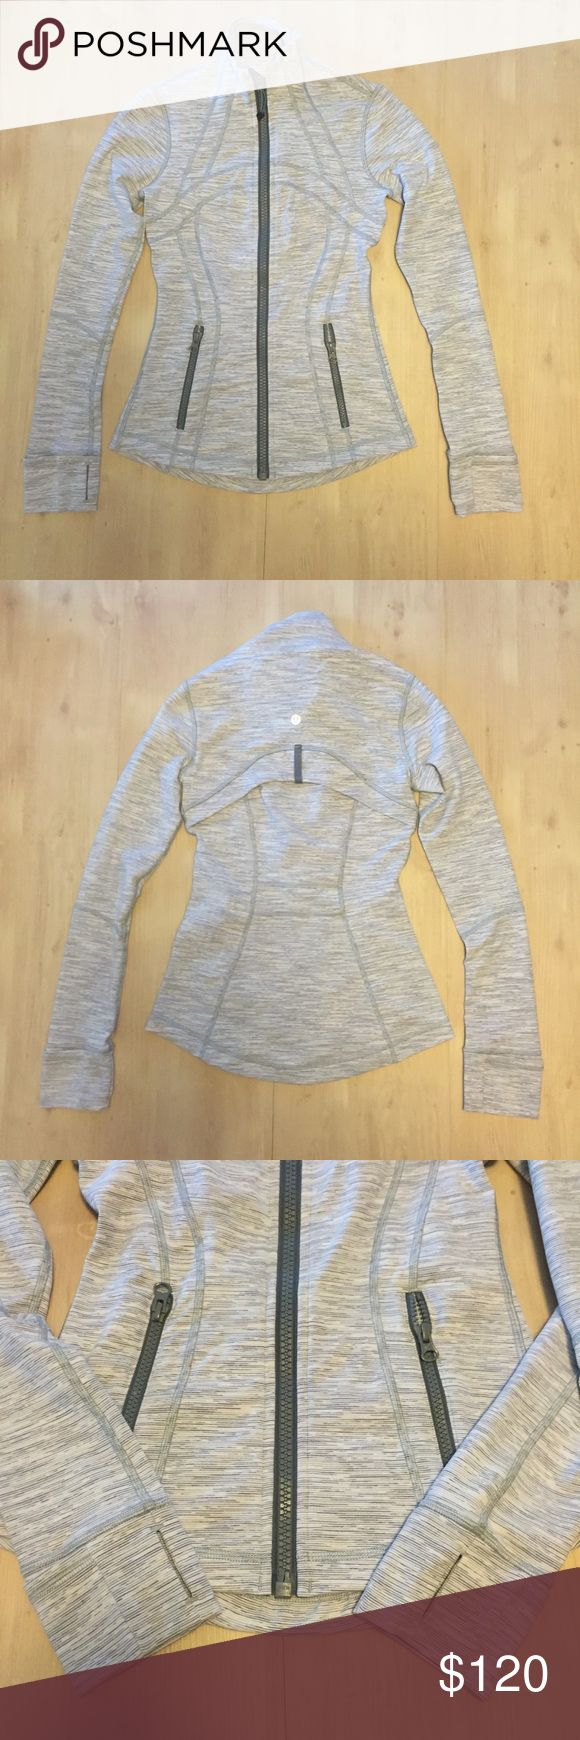 Lululemon Define Jacket Wee Are From Space SS Sz 2 Lululemon Define Jacket Wee are from space silver spoon WASS Sz 2 EUC pre owned no stains no loose threads no holes w/o tear tag yes Sz dot 2 lululemon athletica Jackets & Coats